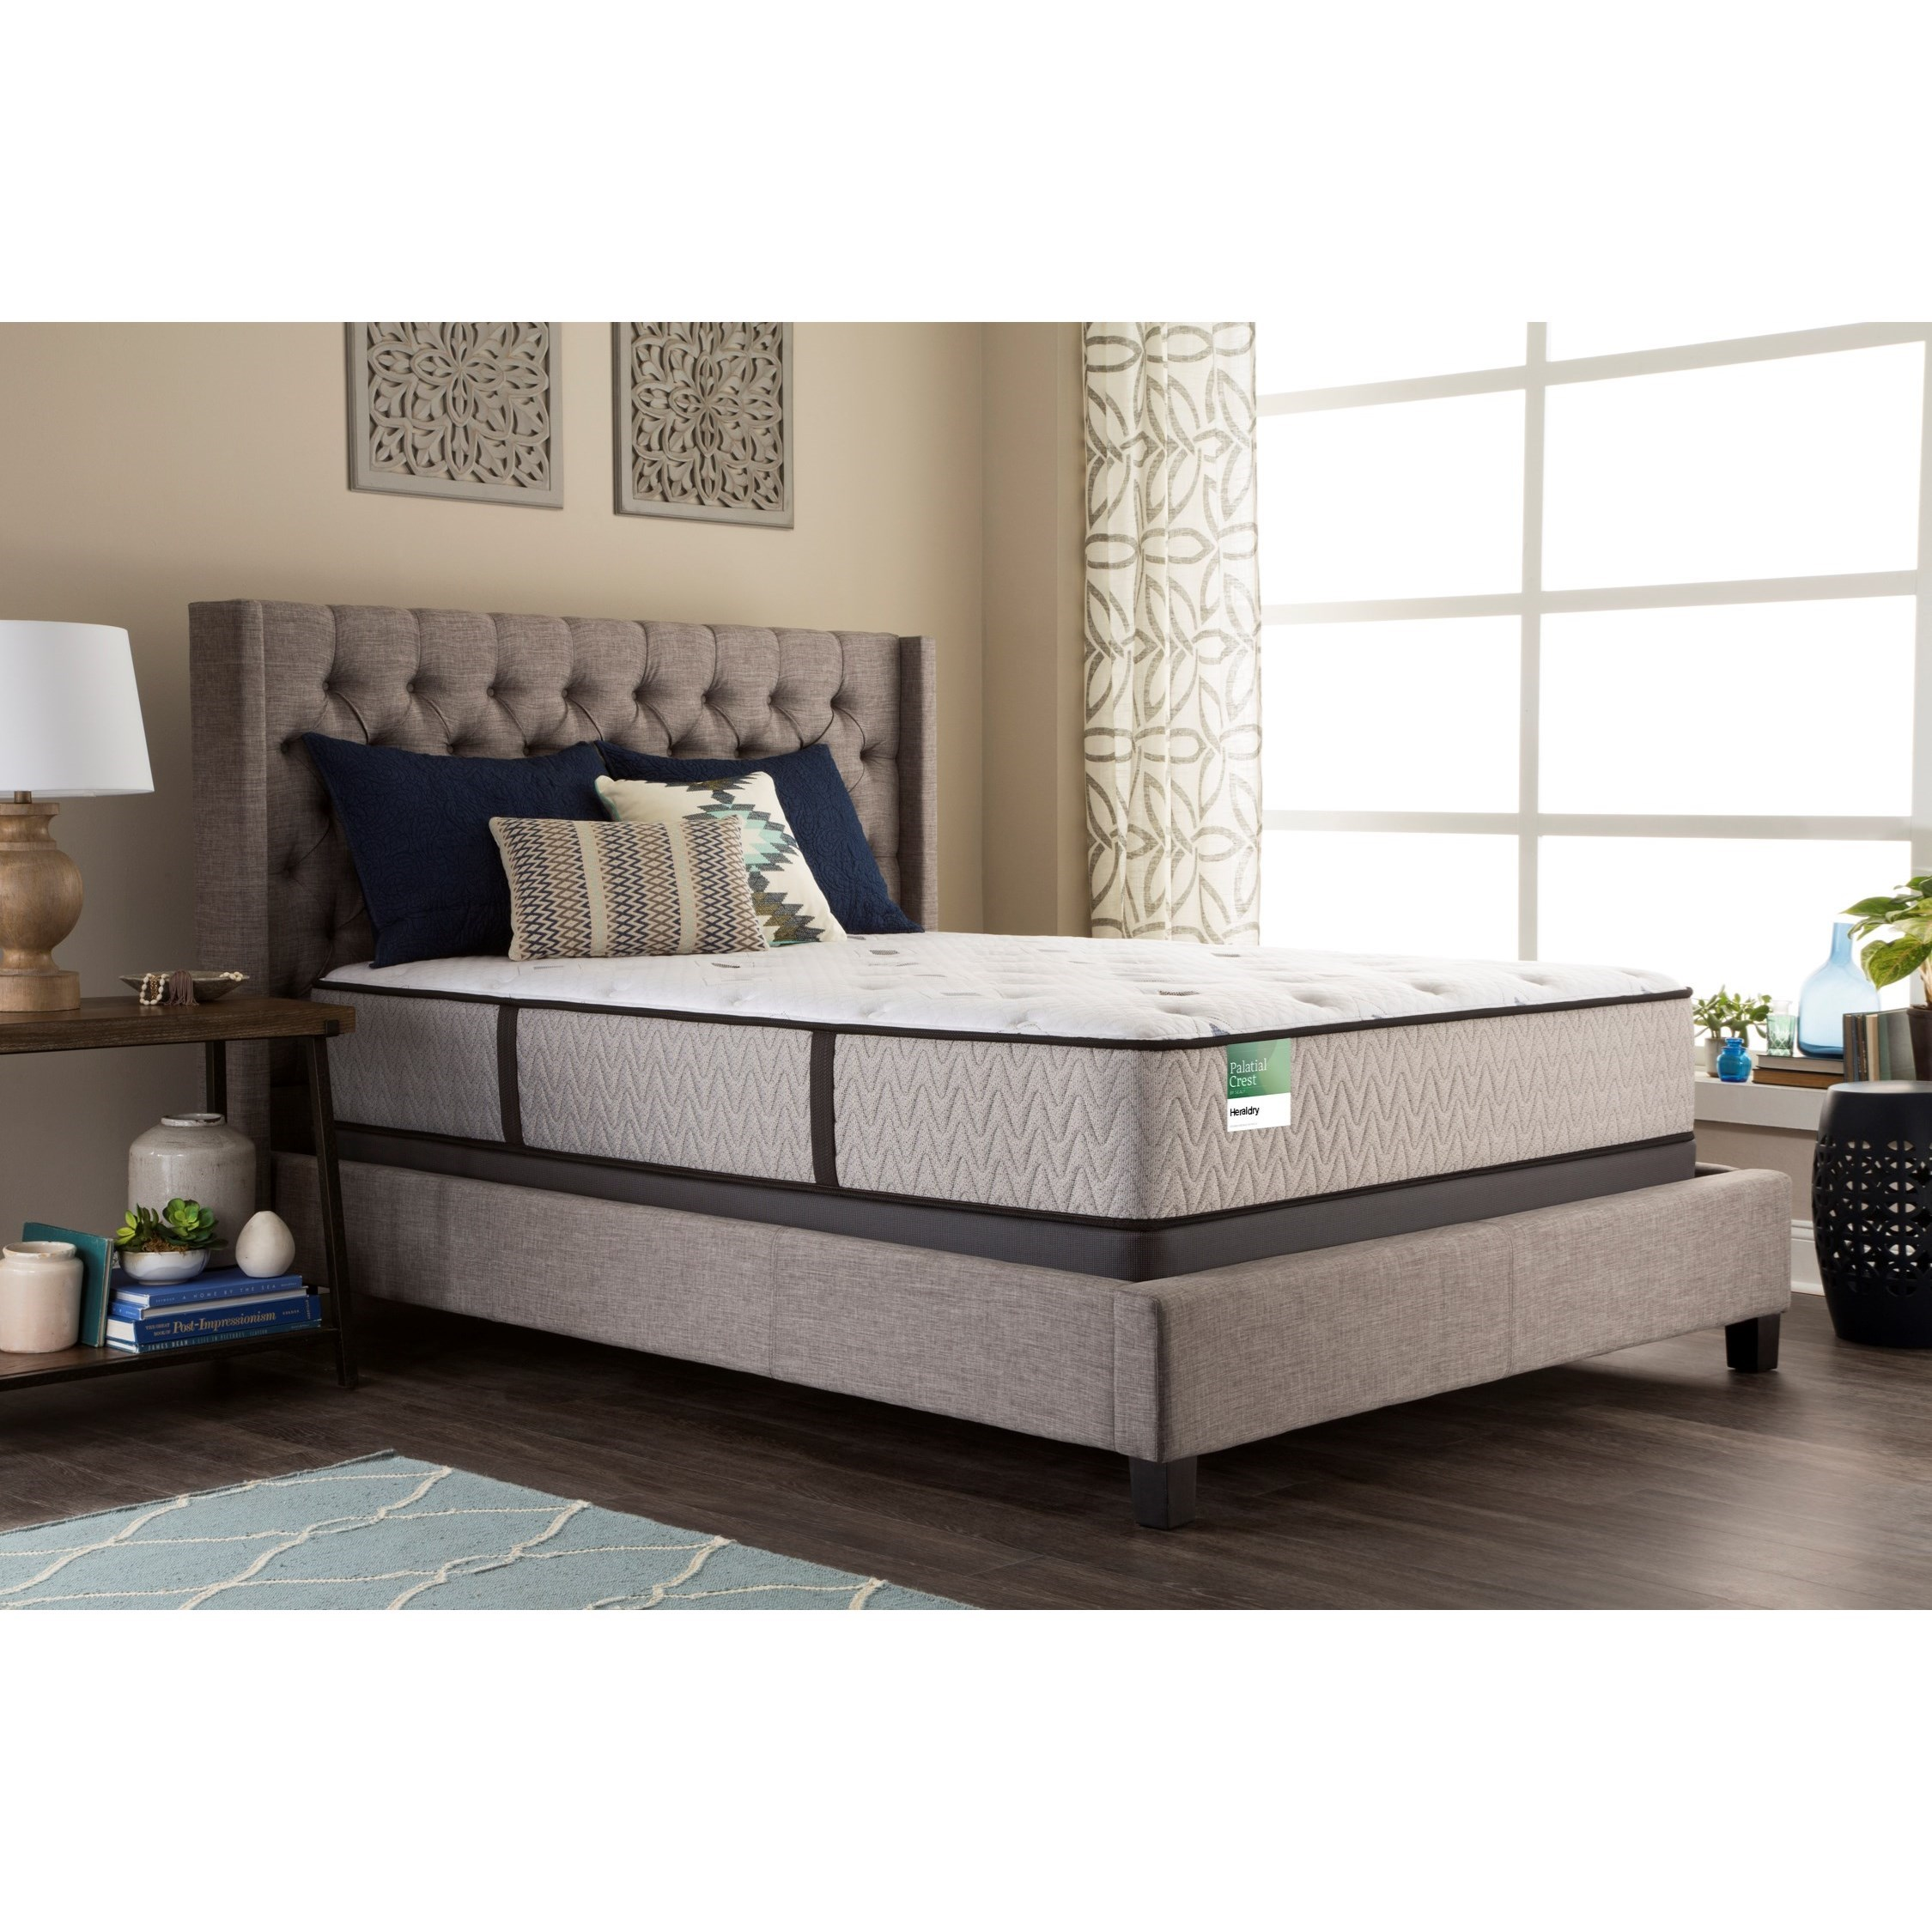 "Twin 14 1/2"" Firm Mattress Set"